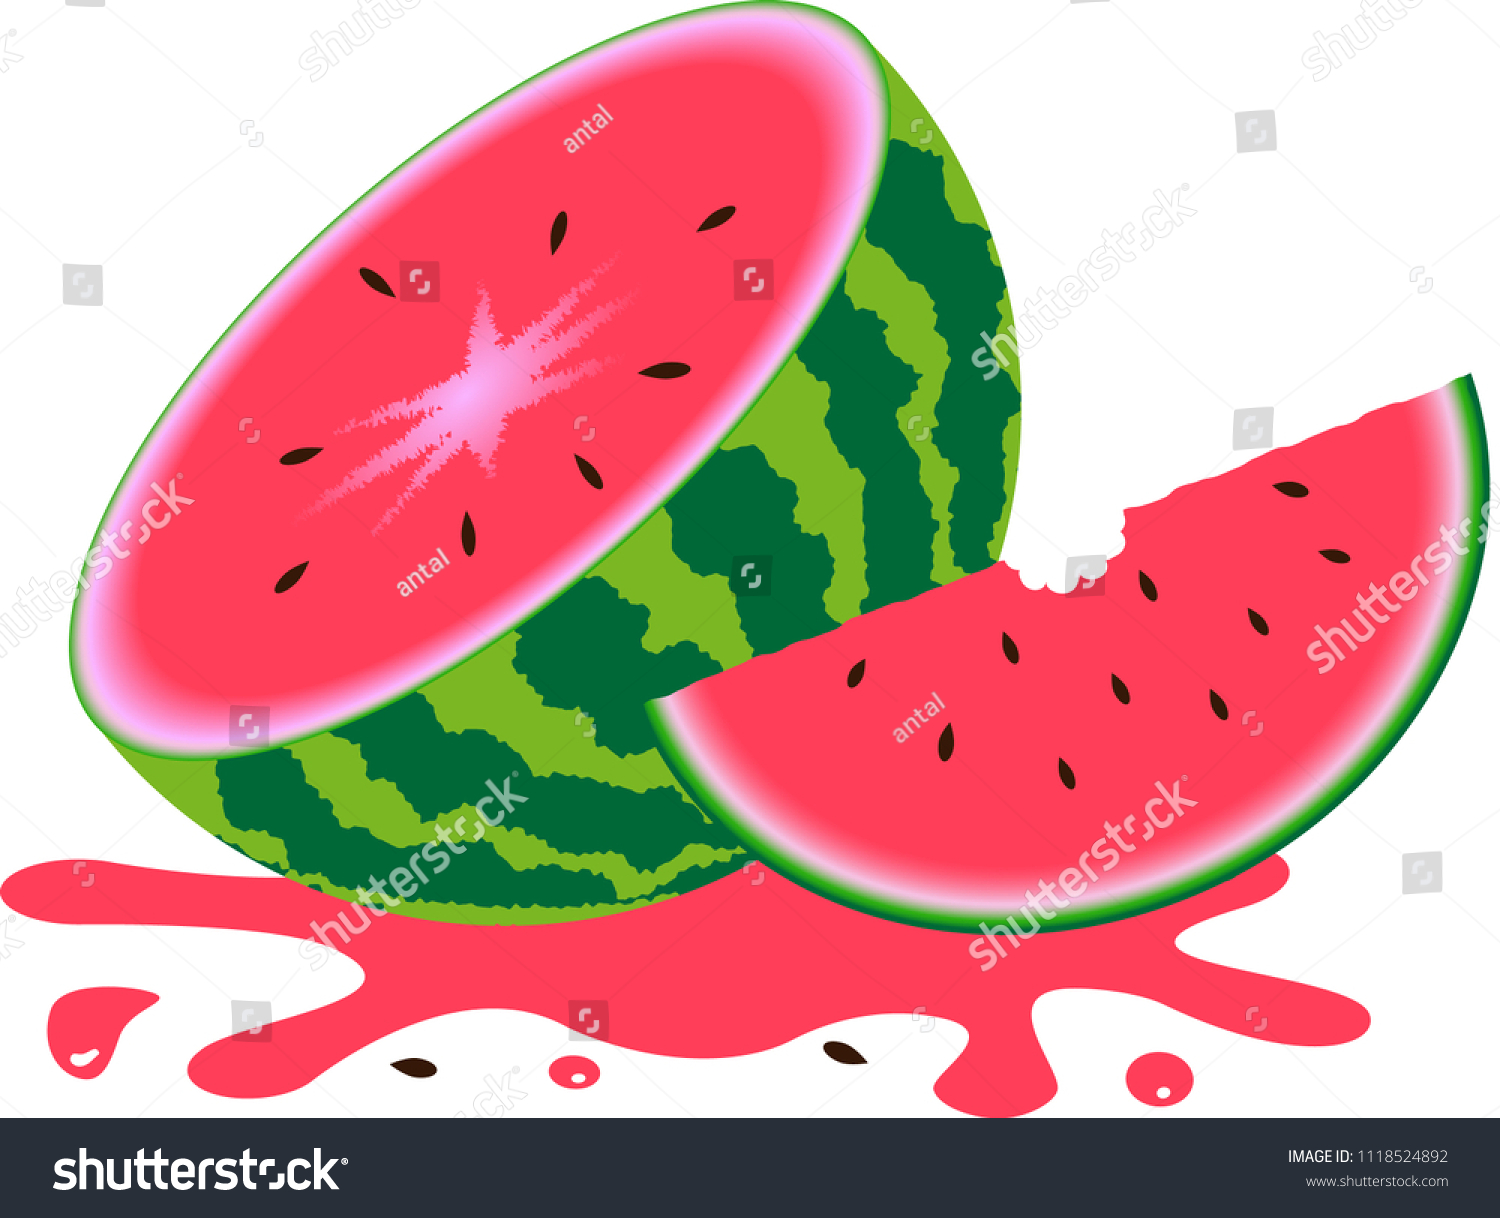 Watermelon Slices Watermelon Seeds Stock Vector (Royalty Free